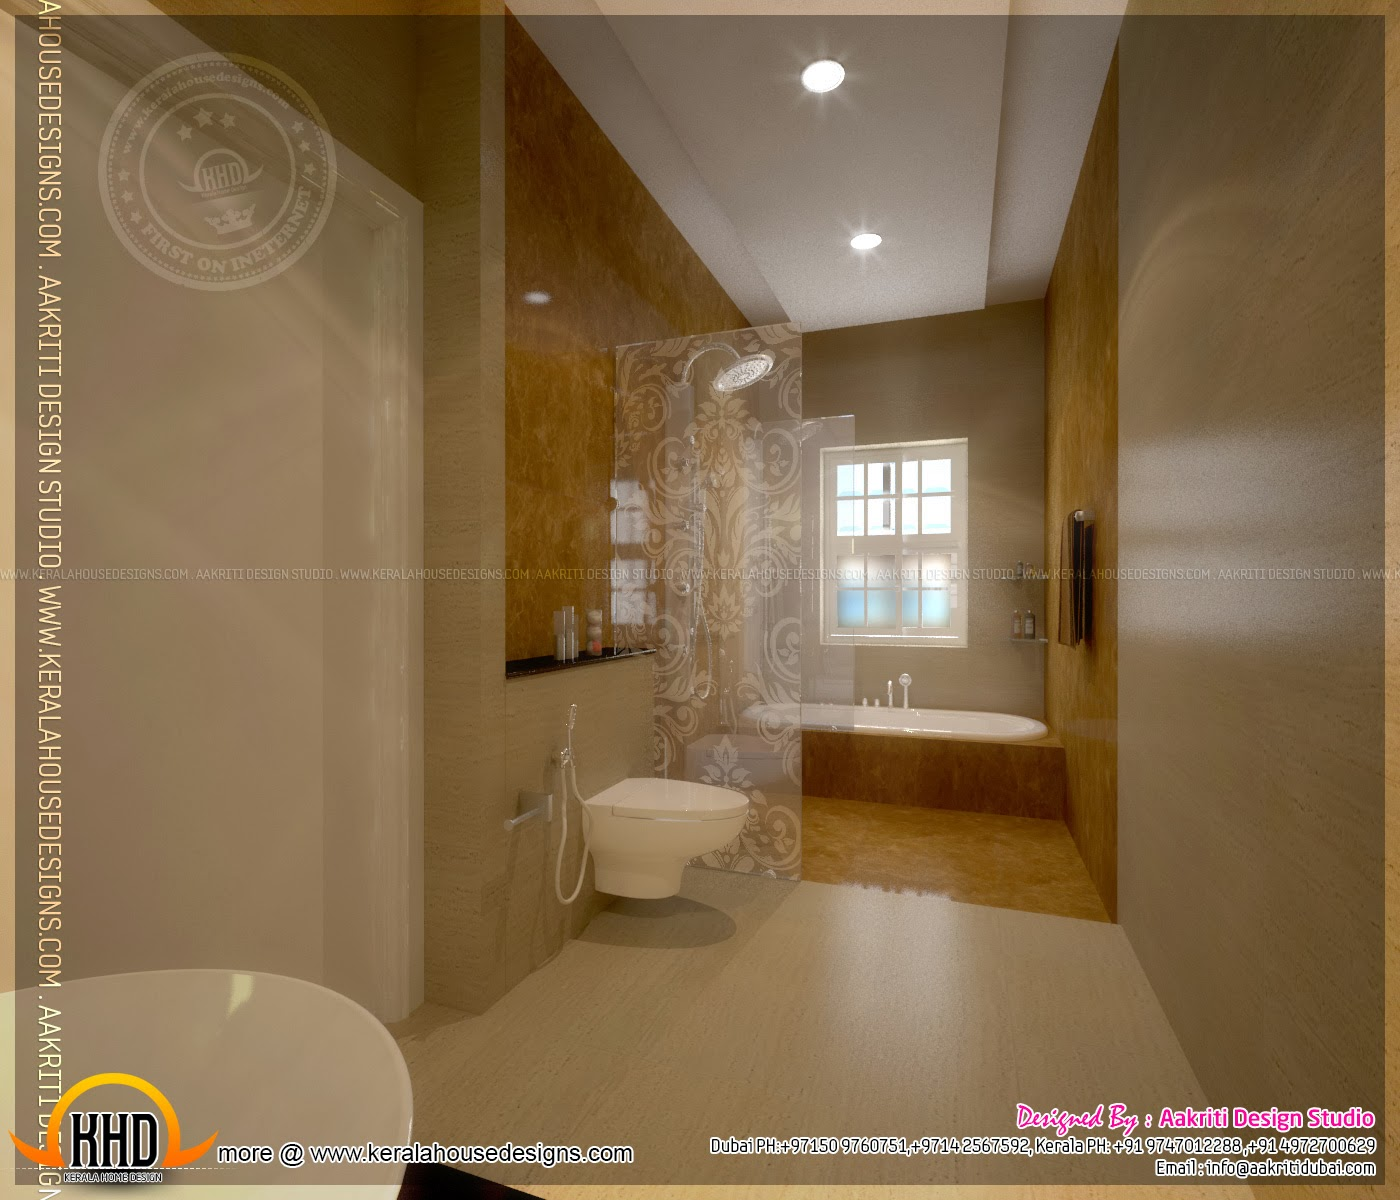 Bathroom Interior Design Ideas Kolkata ~ Master bedroom and bathroom interior design kerala home